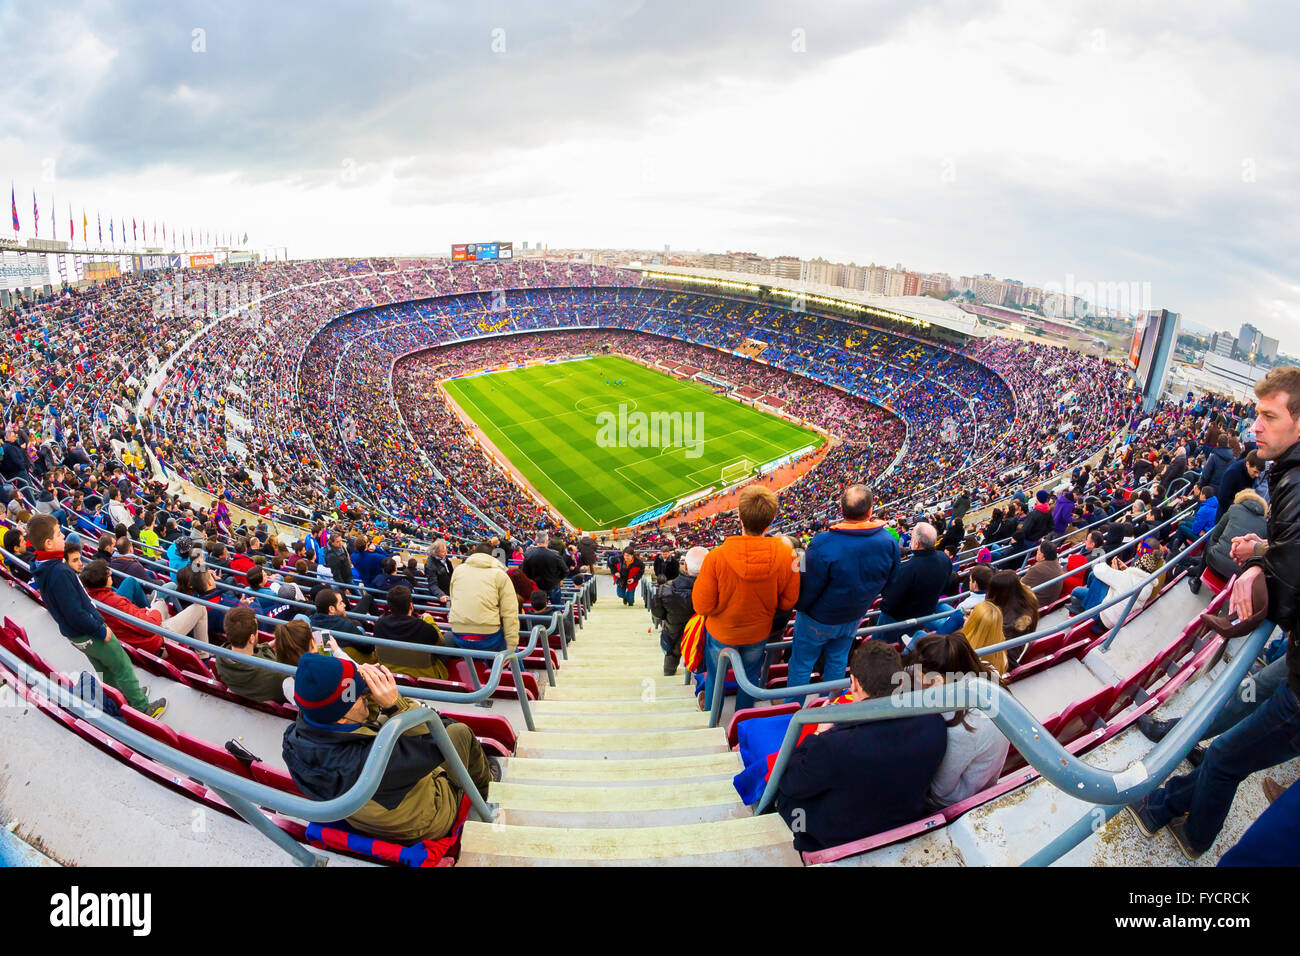 BARCELONA - FEB 21: A general view of the Camp Nou Stadium in the football match between Futbol Club Barcelona and - Stock Image